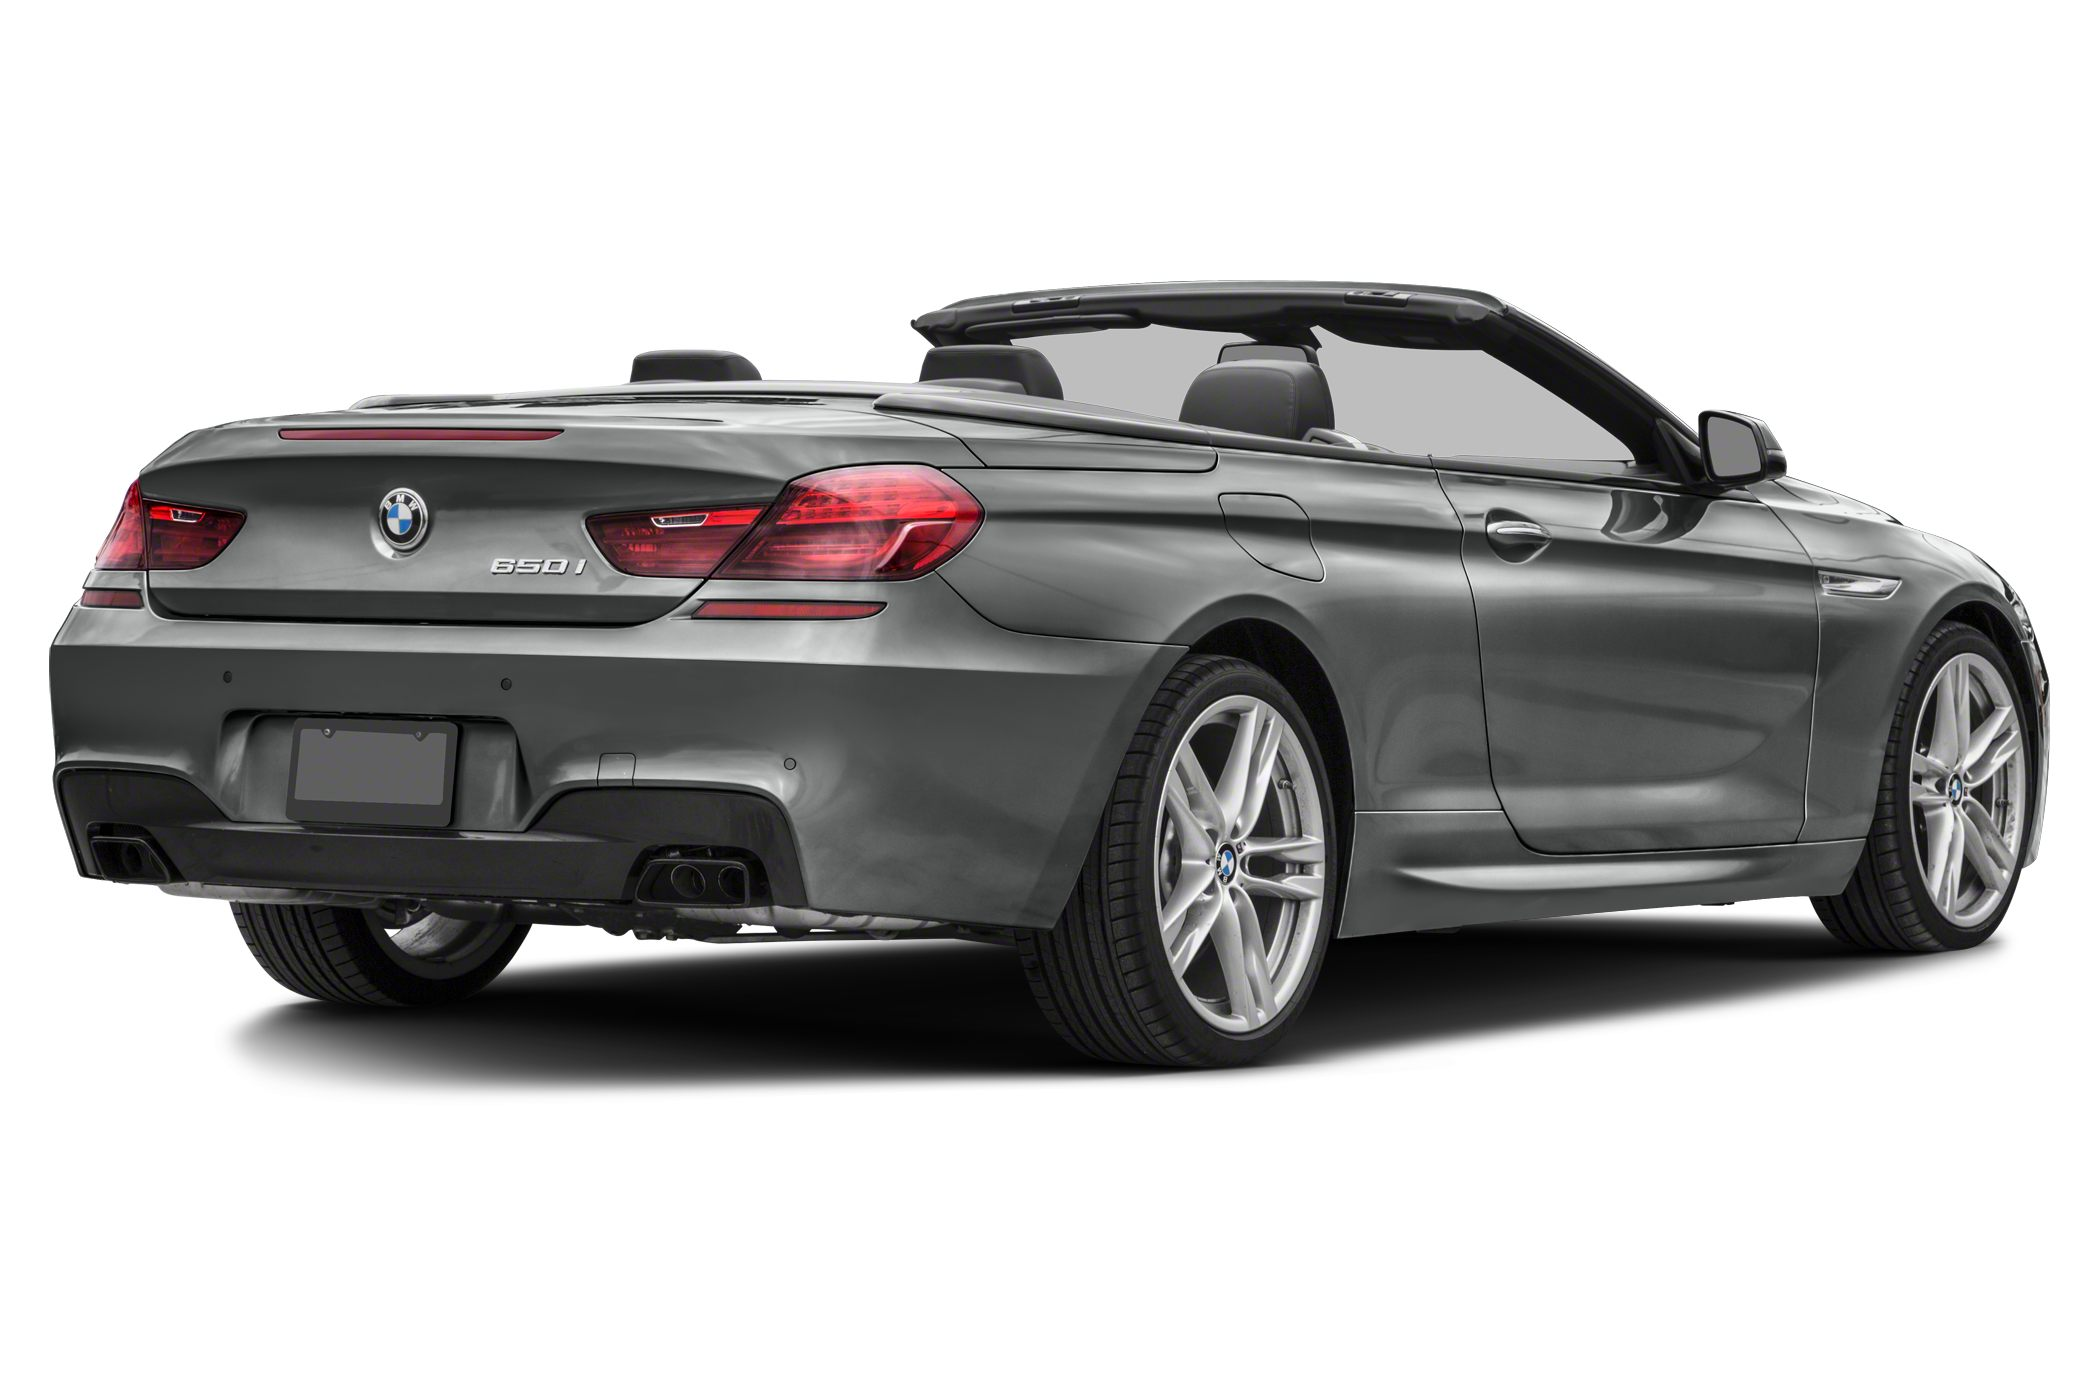 Bmw 650 Convertible Models Price Specs Reviews Cars Com